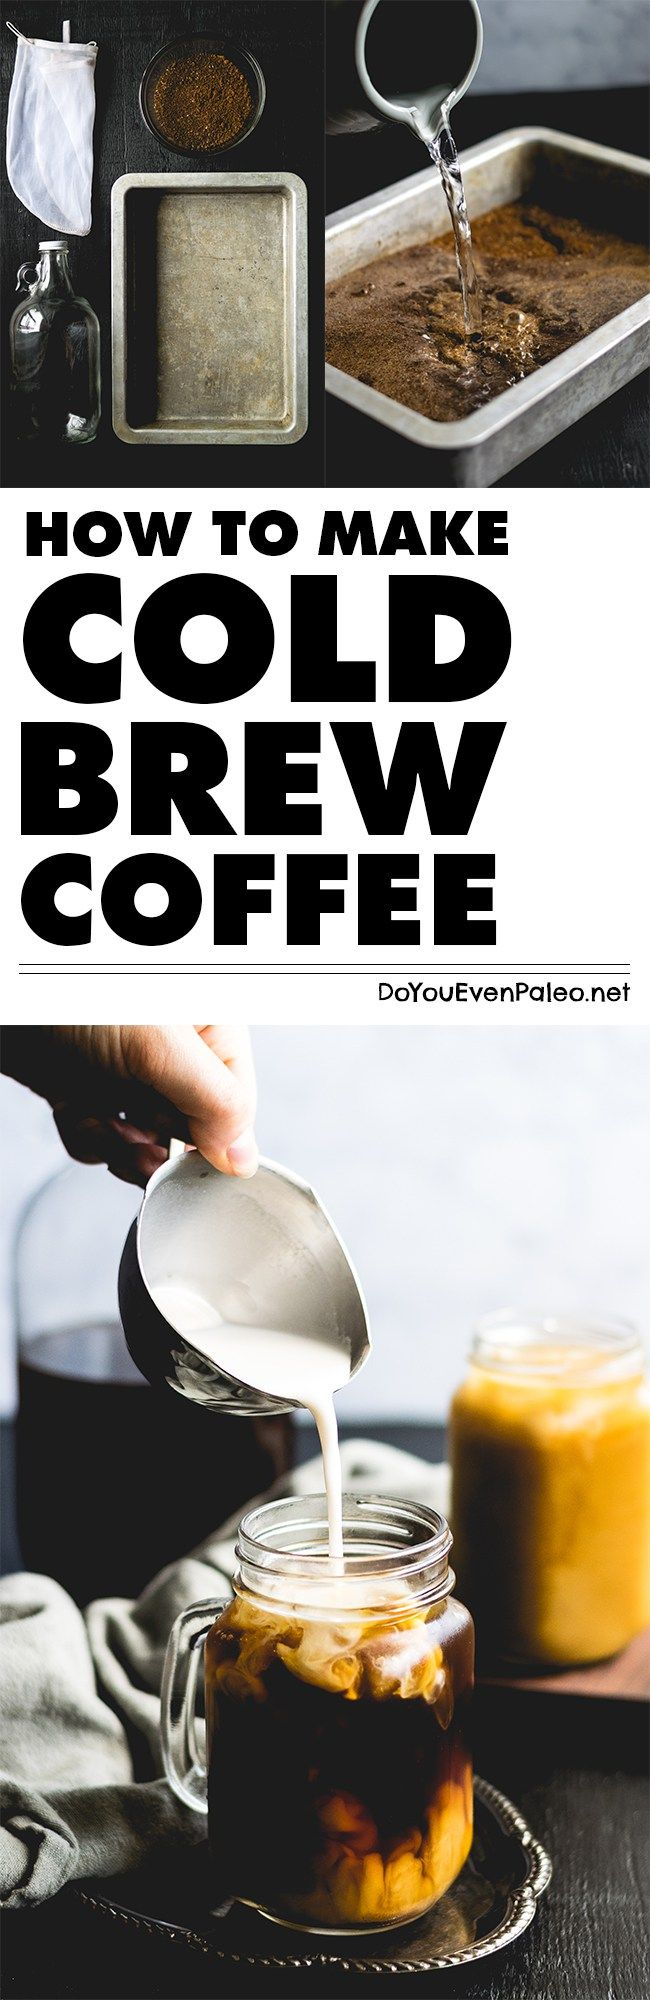 How to Make Cold Brew Coffee at Home - skip the cold brew coffee kit. You probably have everything you need to brew your own without a silly kit! | DoYouEvenPaleo.net